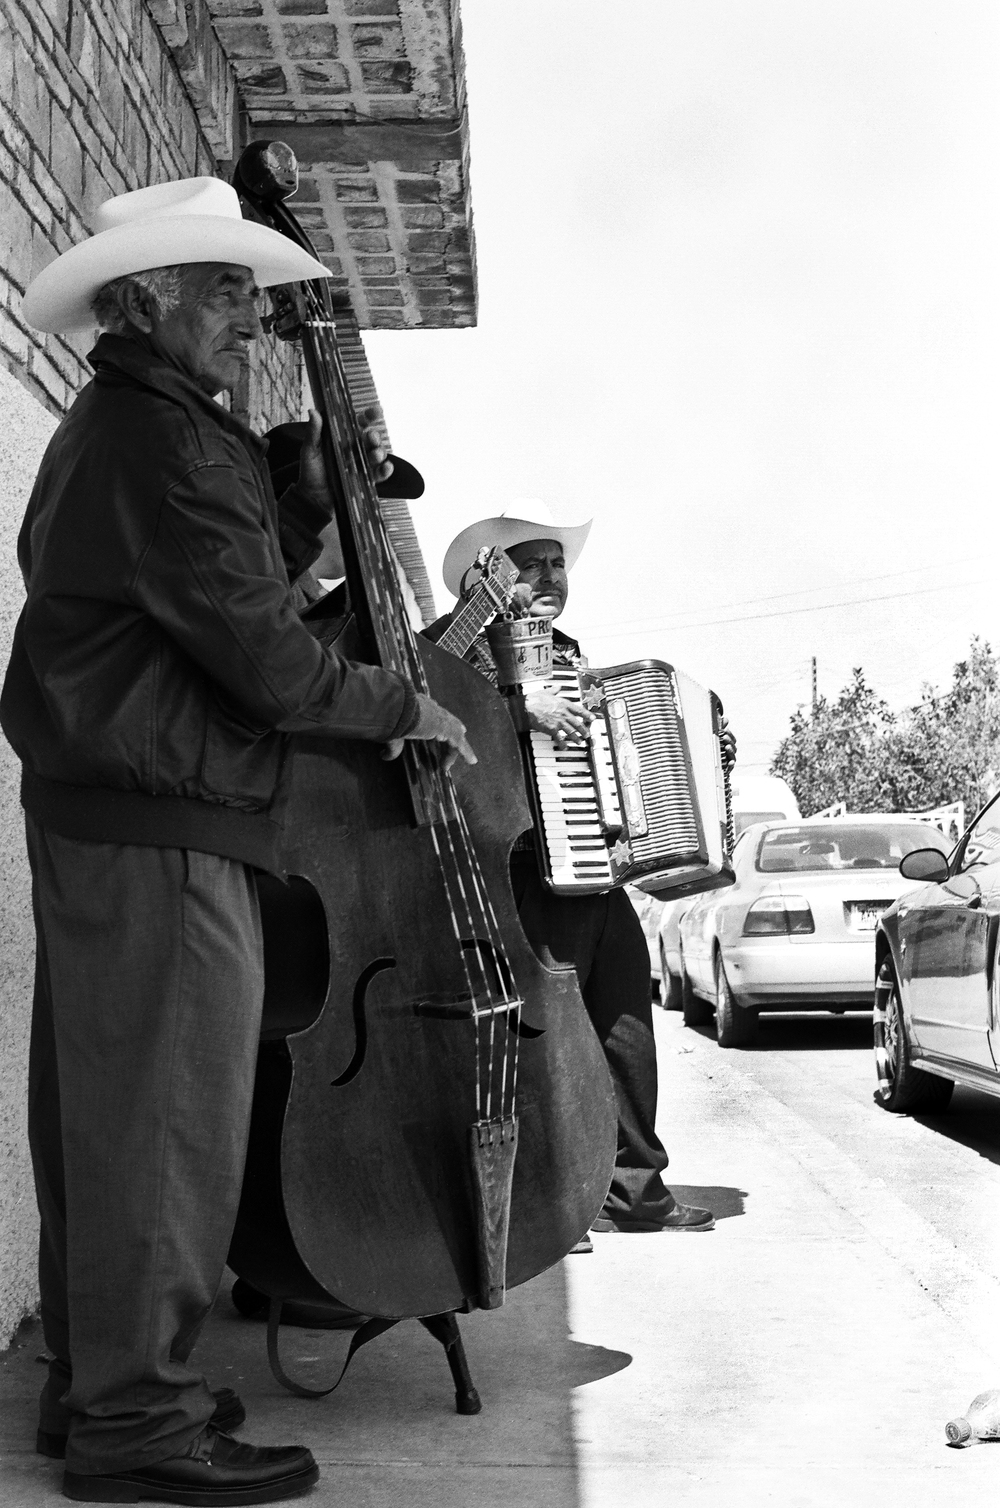 Musicos.  Rosarito, Baja California, Mexico. 35mm.